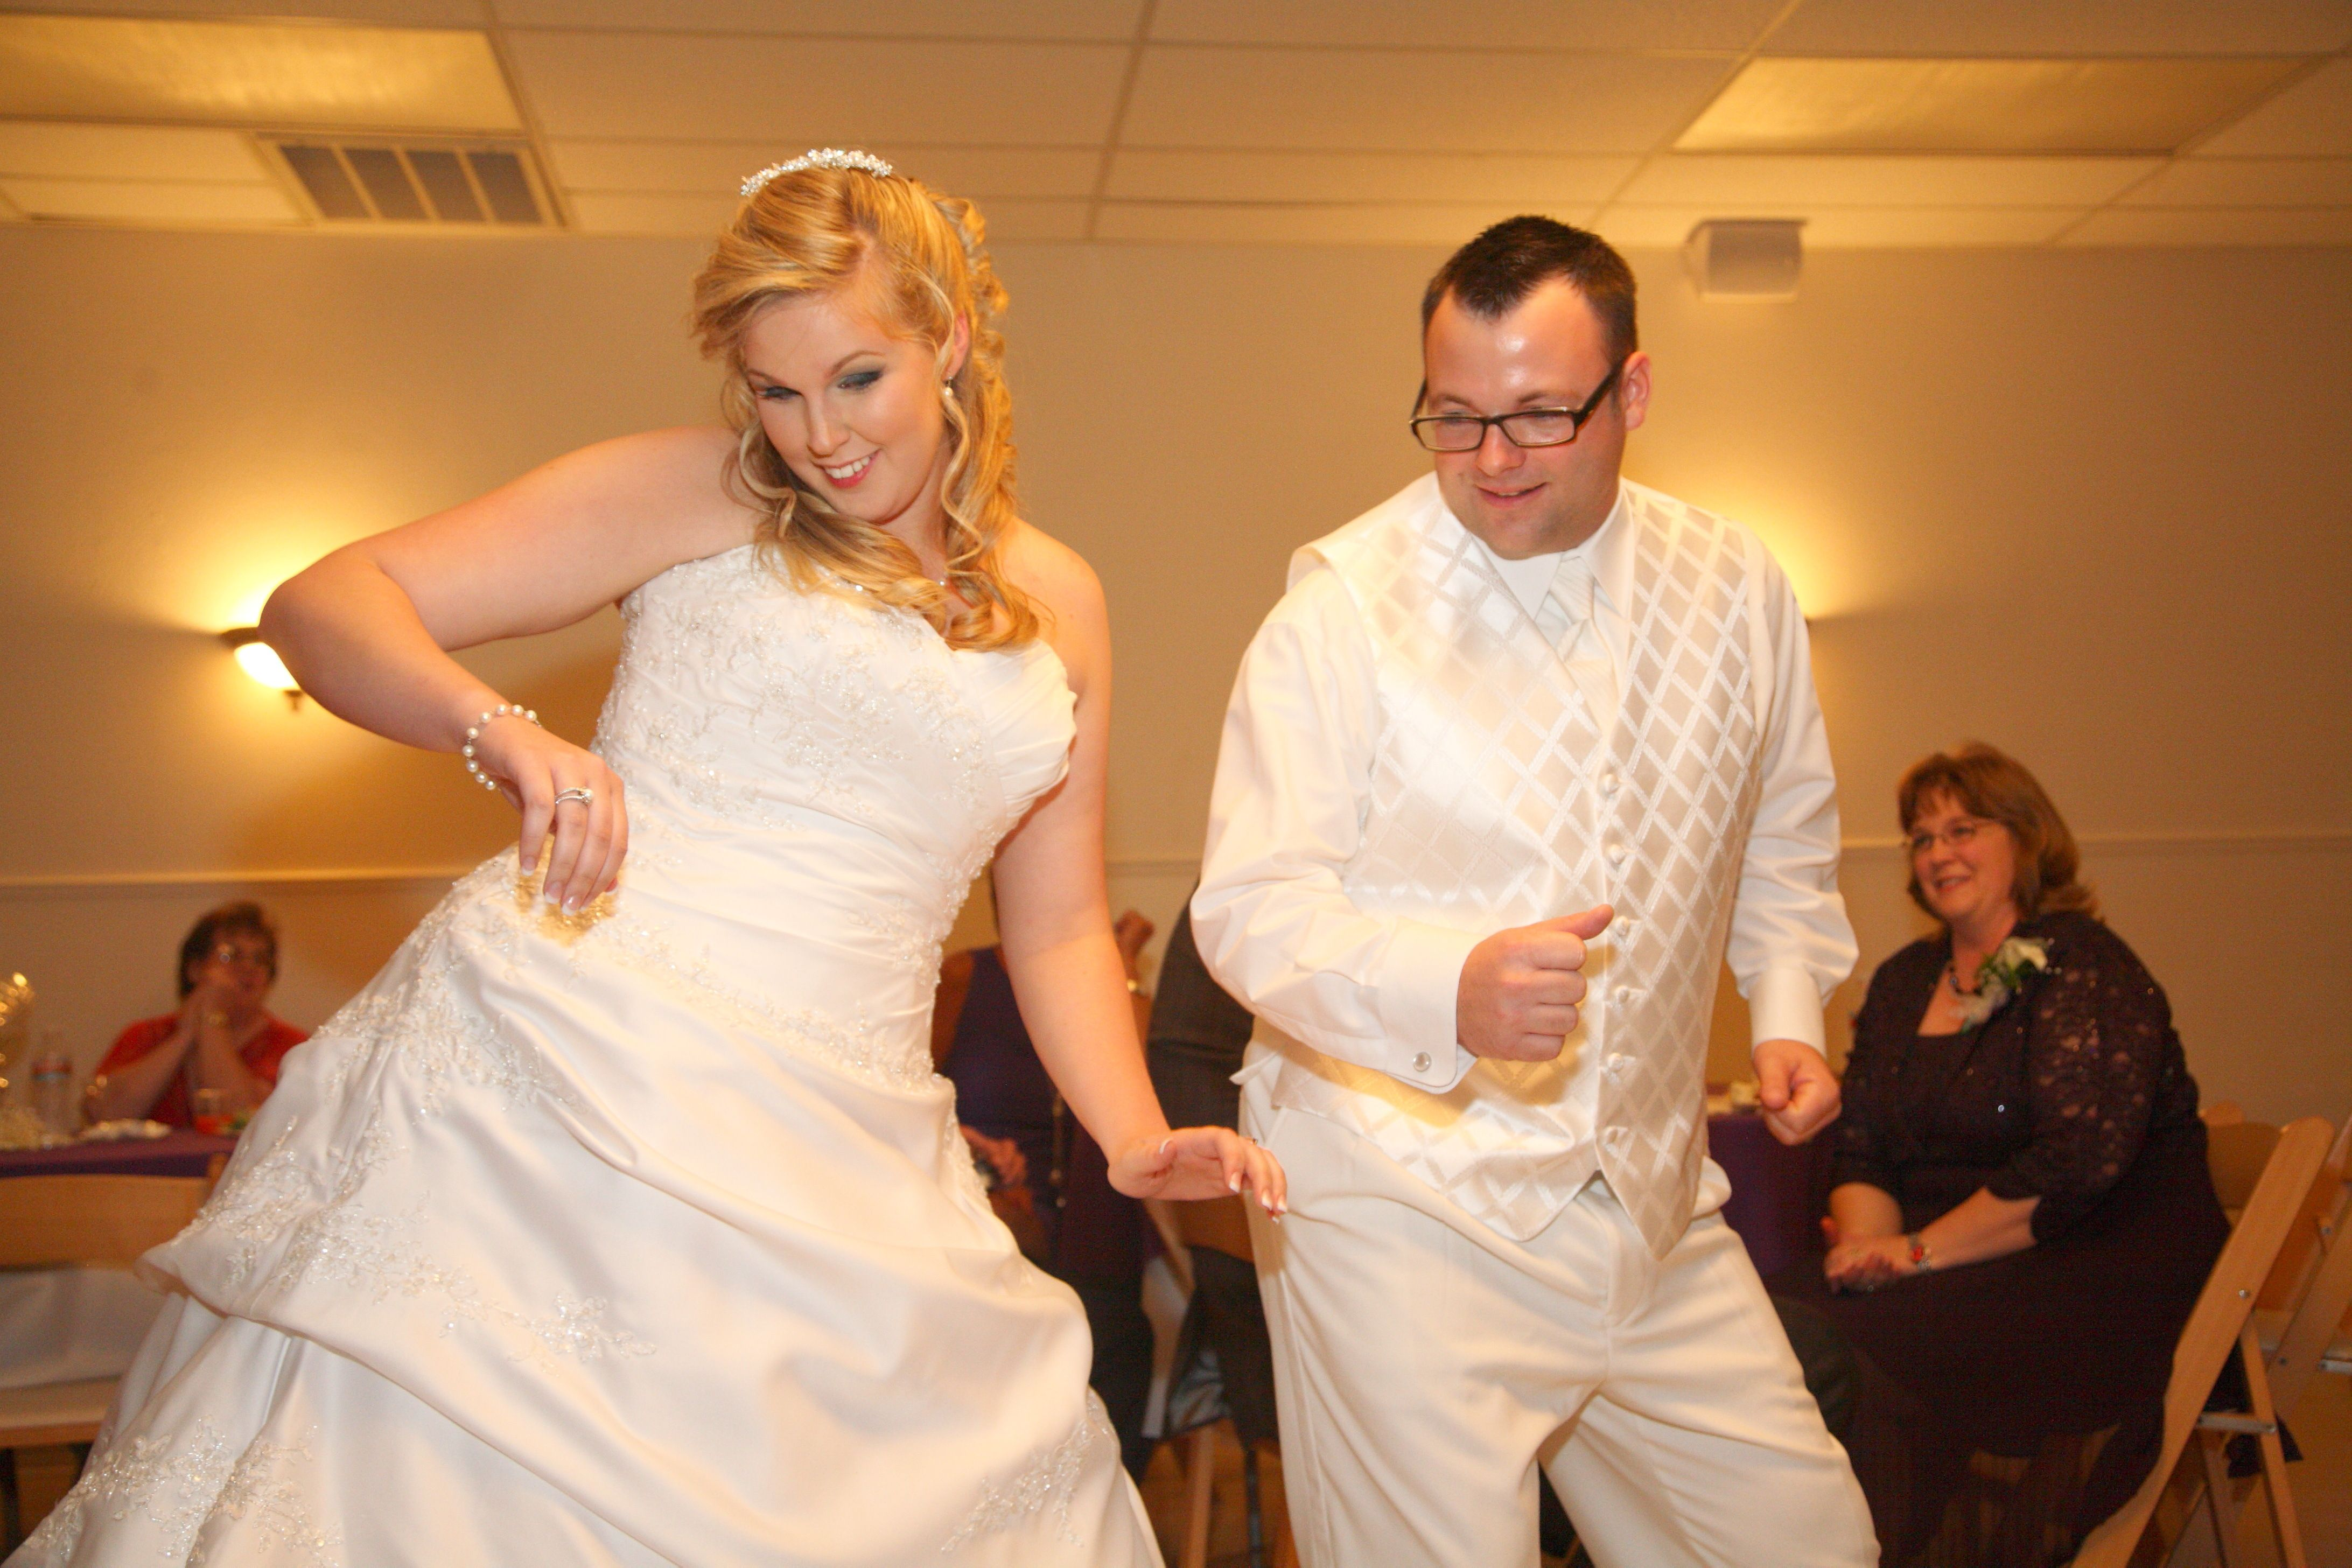 This couple's #firstdance was everything from disco to wobble.  The guests loved it!